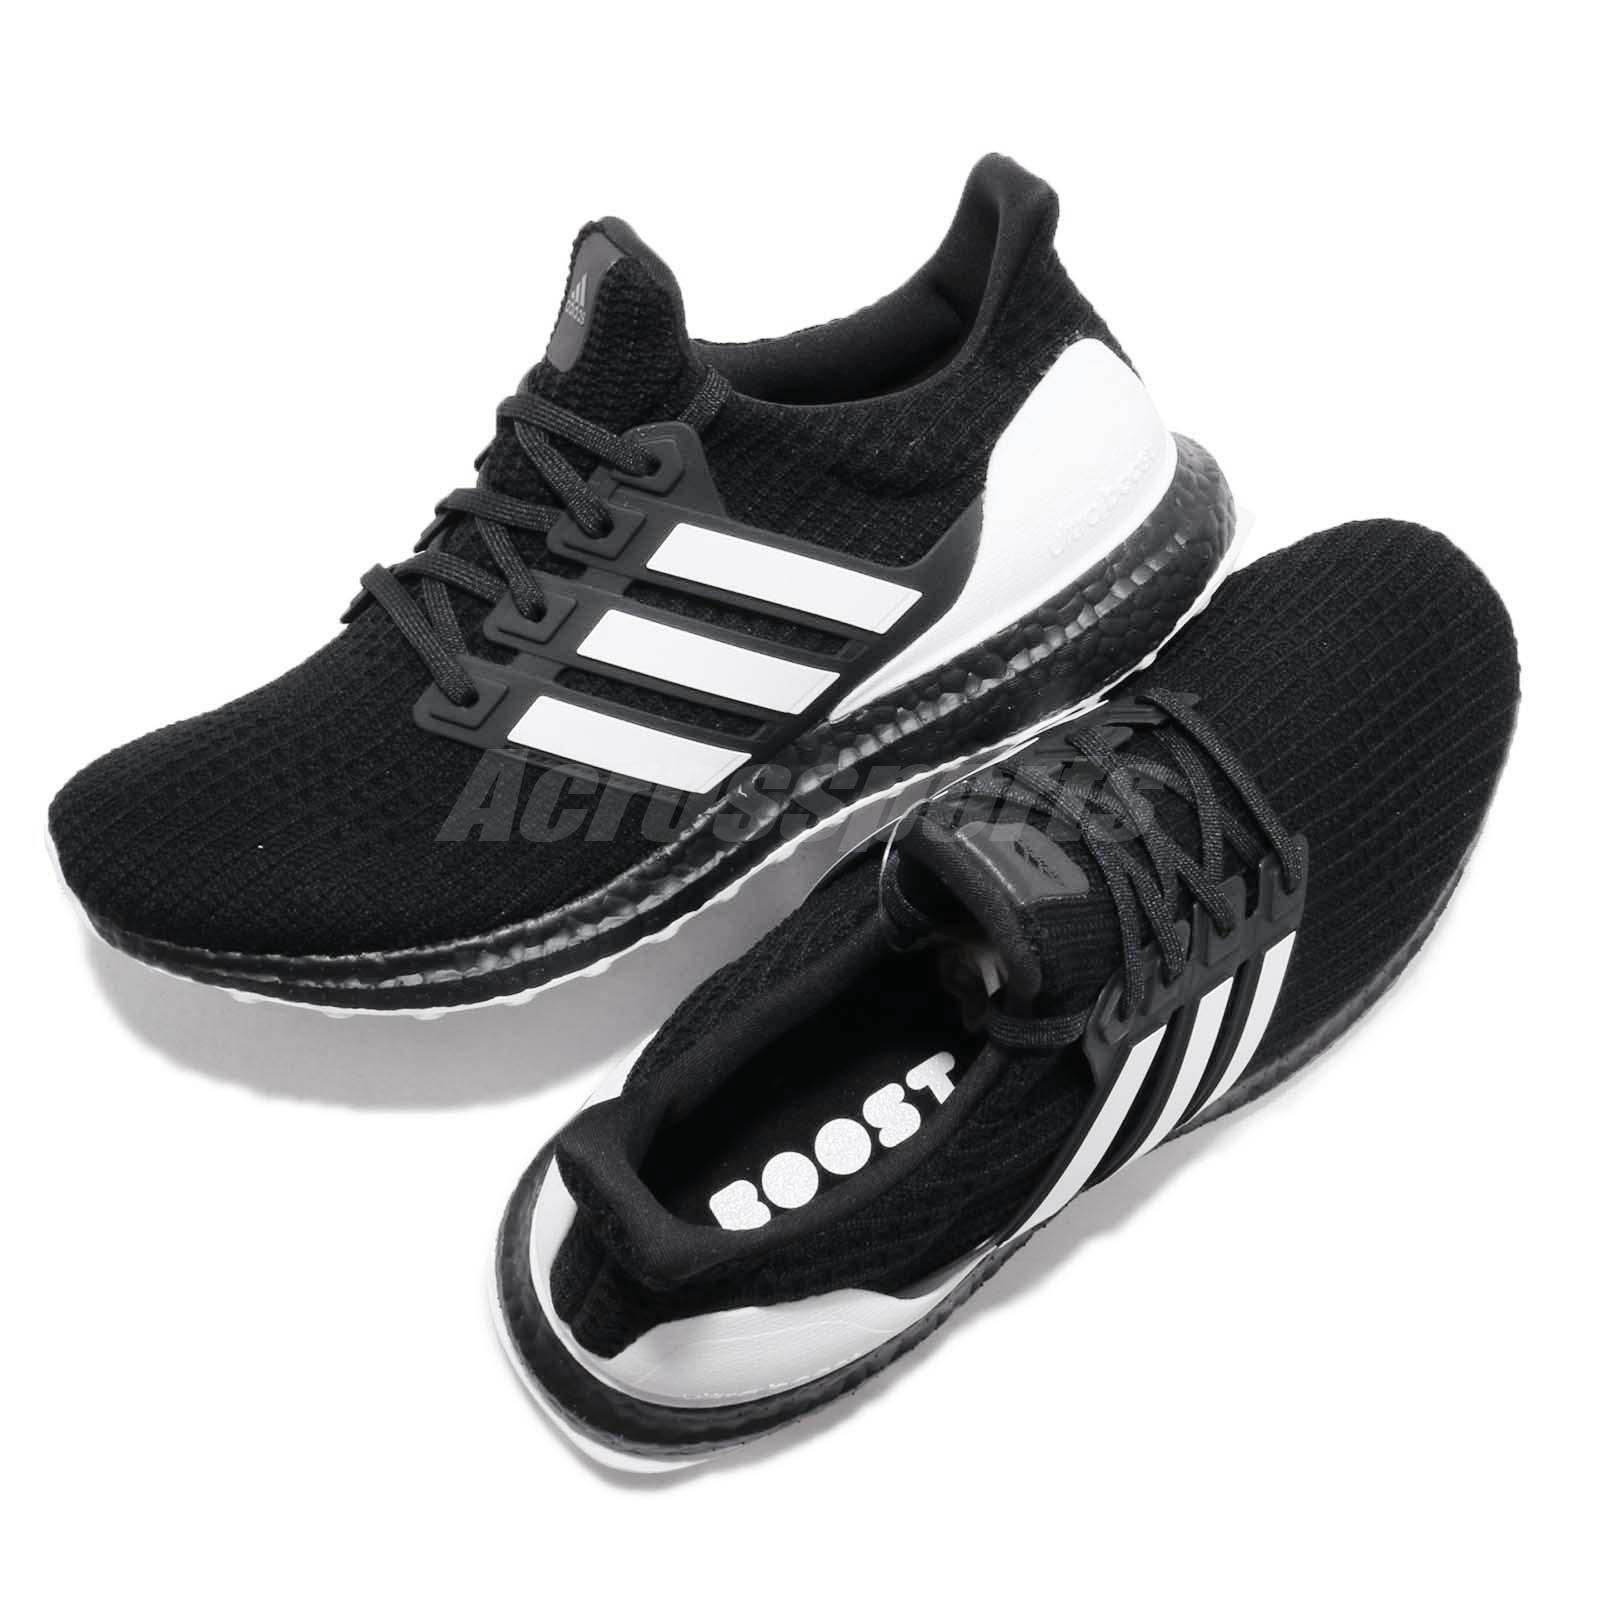 fde802b6d adidas UltraBoost 4.0 Orca Black White Carbon Men Running Shoes ...